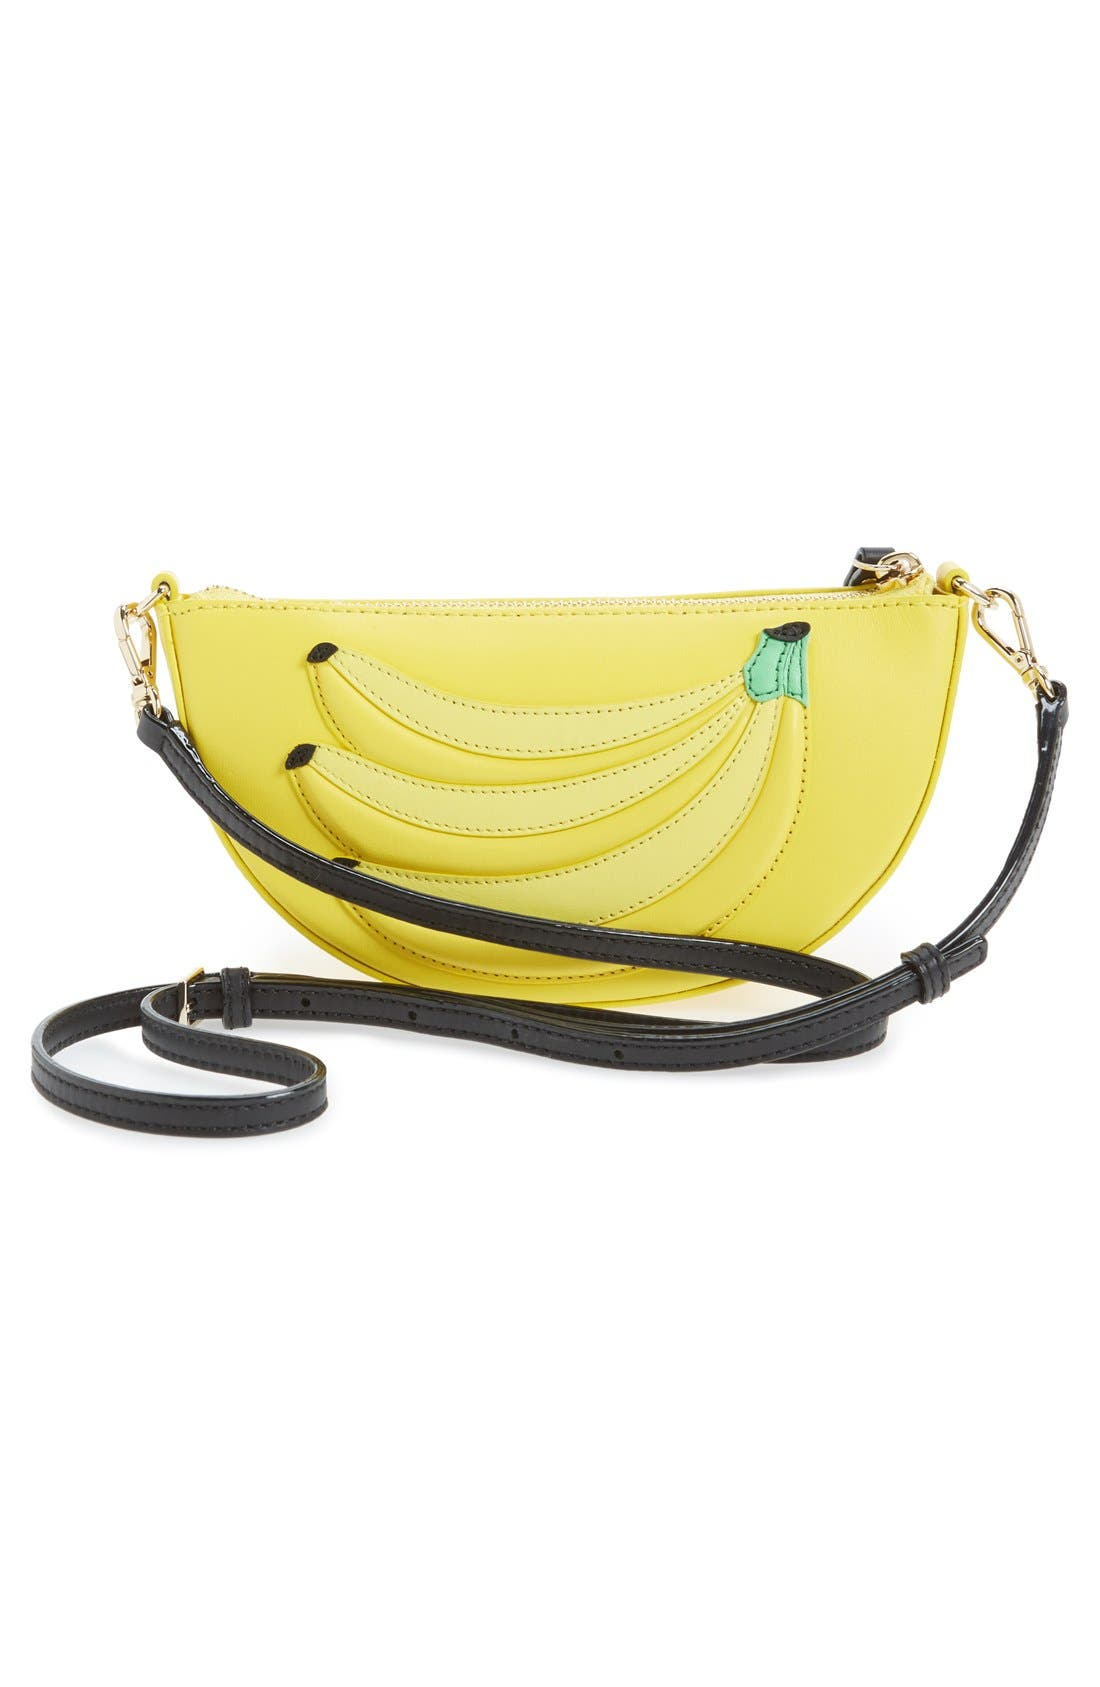 KATE SPADE NEW YORK, 'flights of fancy - bananas' crossbody bag, Alternate thumbnail 2, color, 700